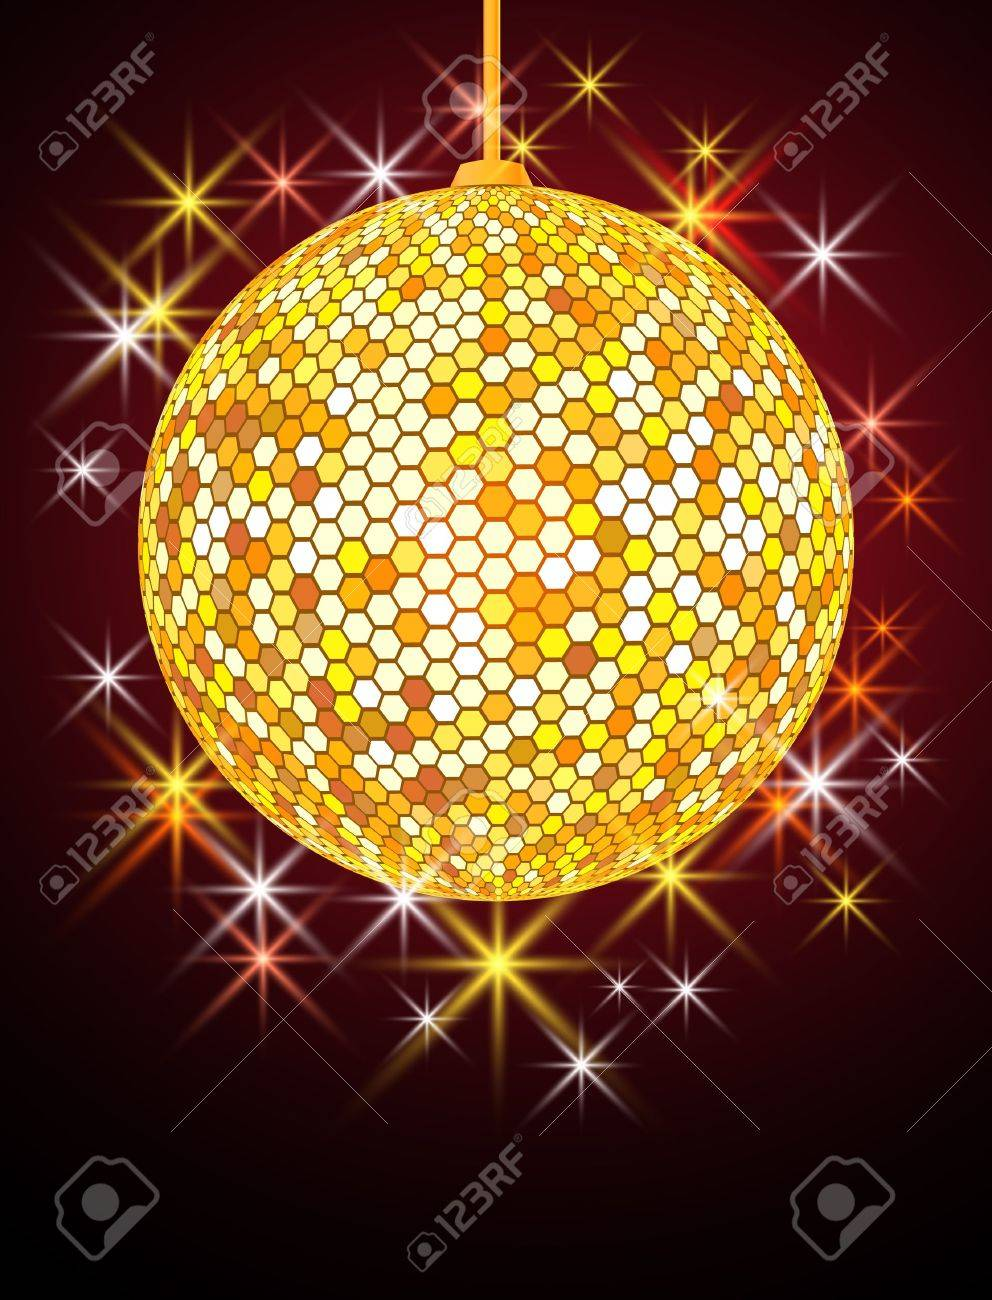 Celebratory background with disco ball Stock Vector - 10446916